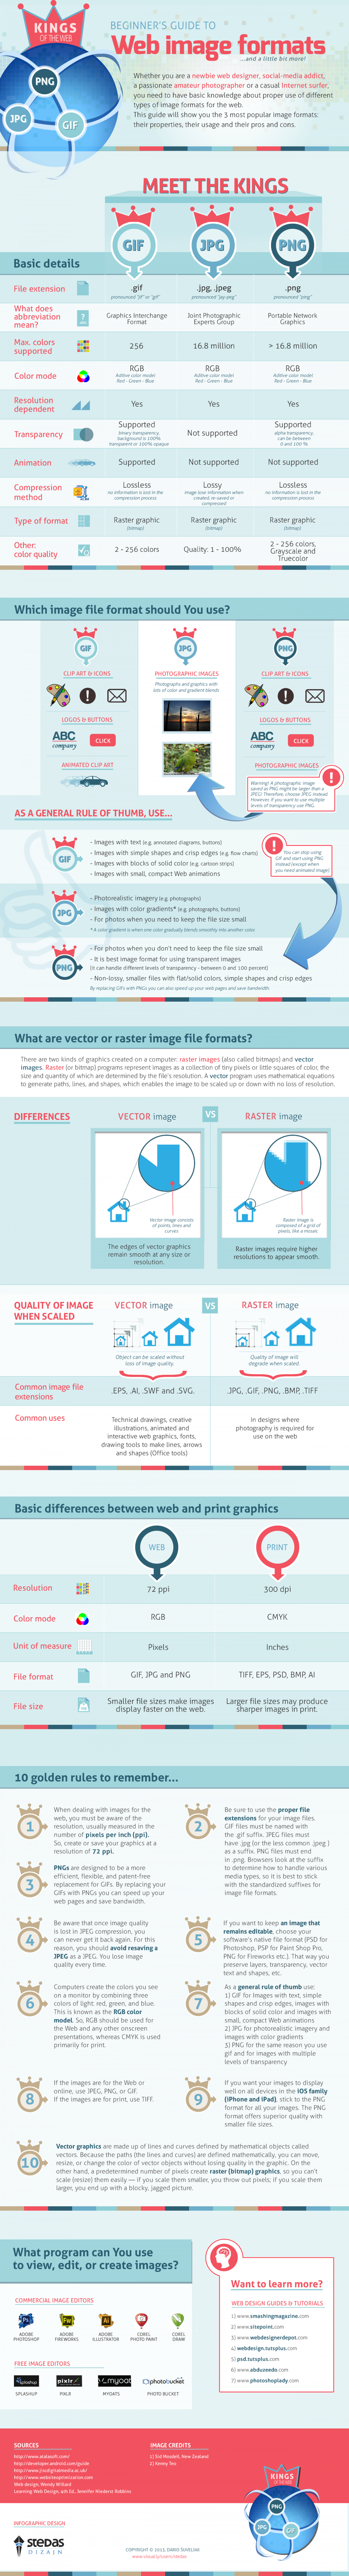 Beginner's Guide to Image Formats for the Web Infographic